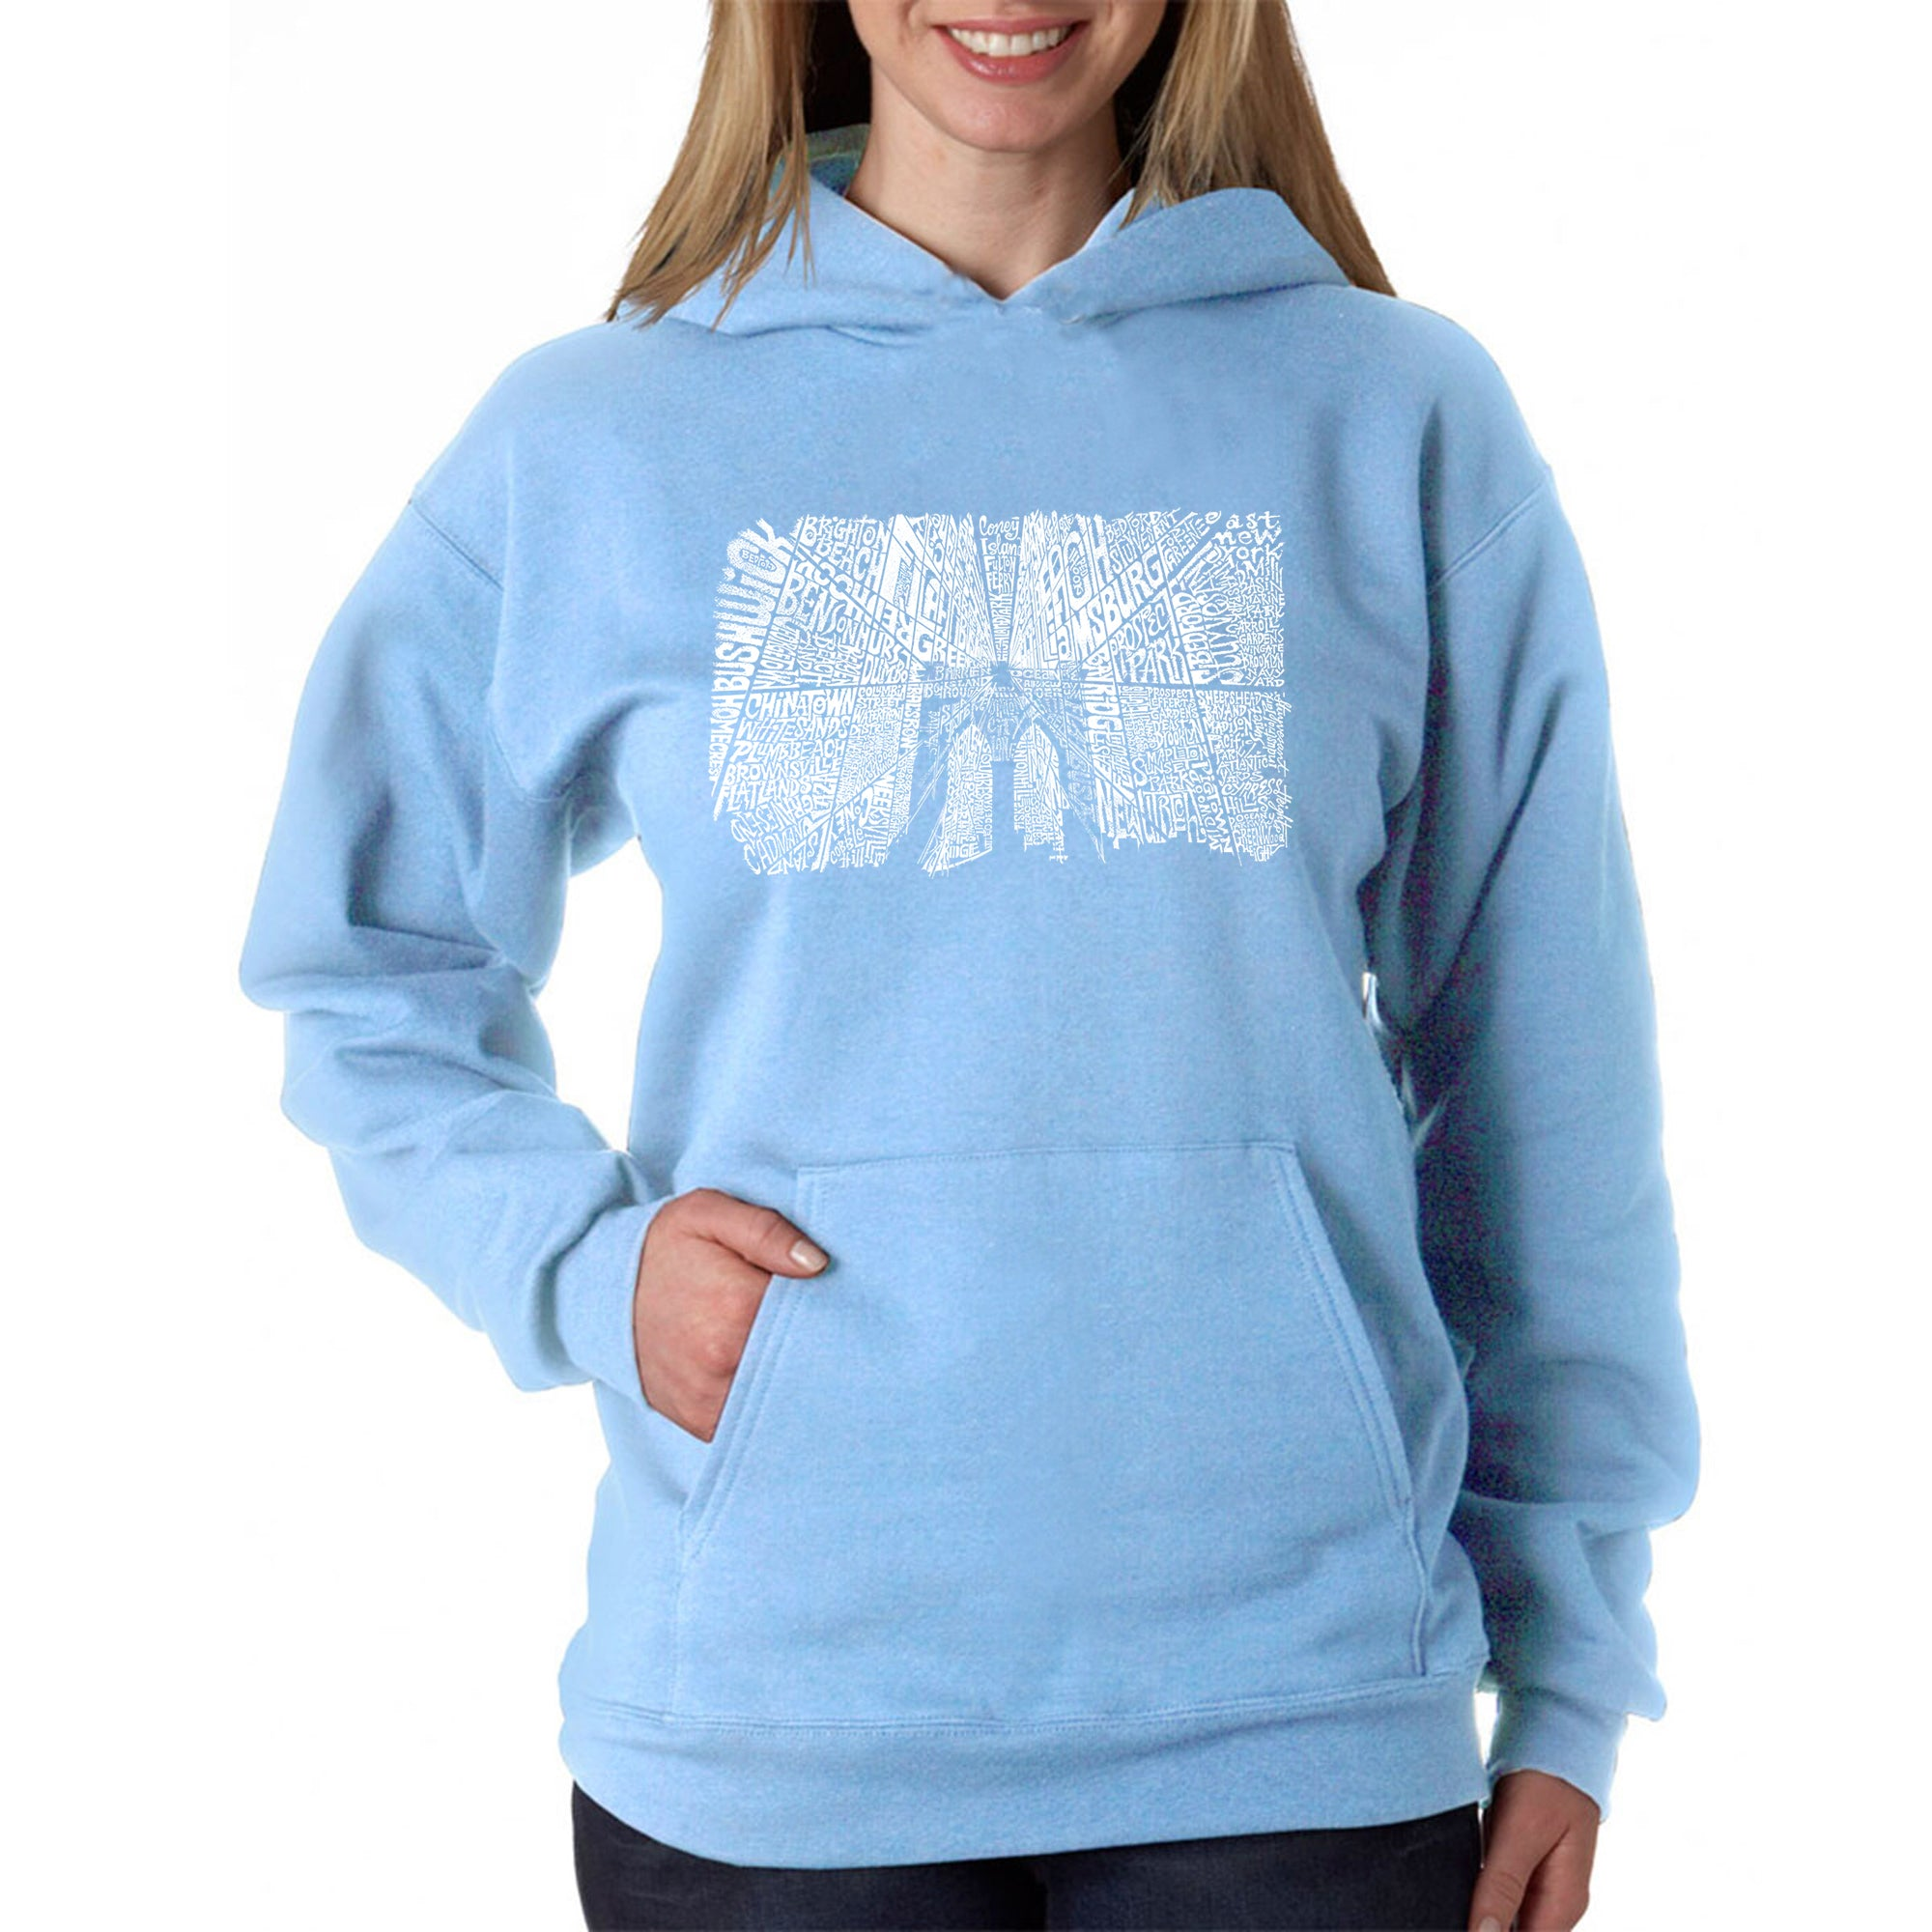 Girls Word Art Hooded Sweatshirt Brooklyn Bridge LA Pop Art